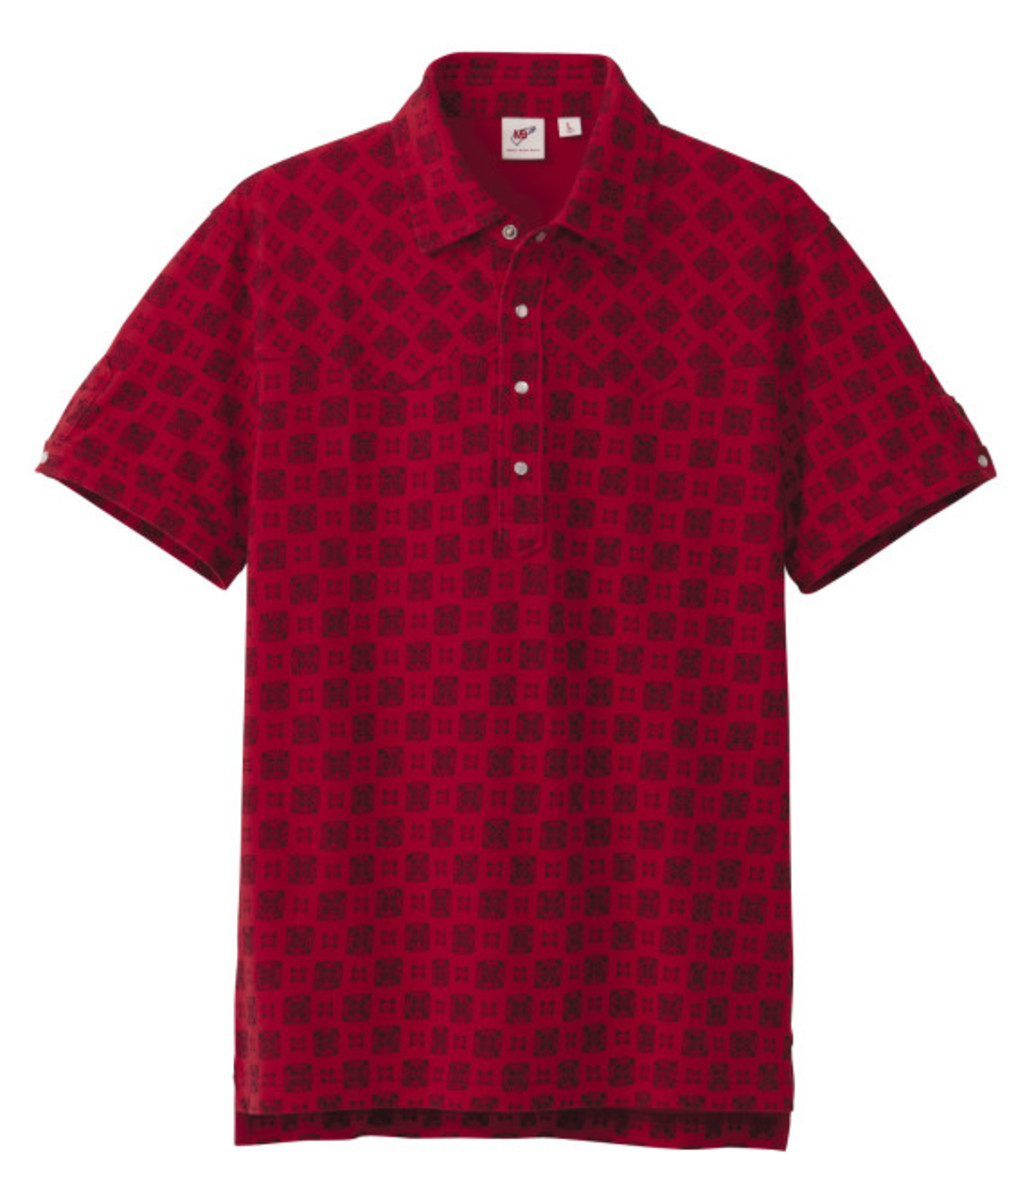 michael-bastian-x-uniqlo-mens-polo-shirt-collection-2013-51